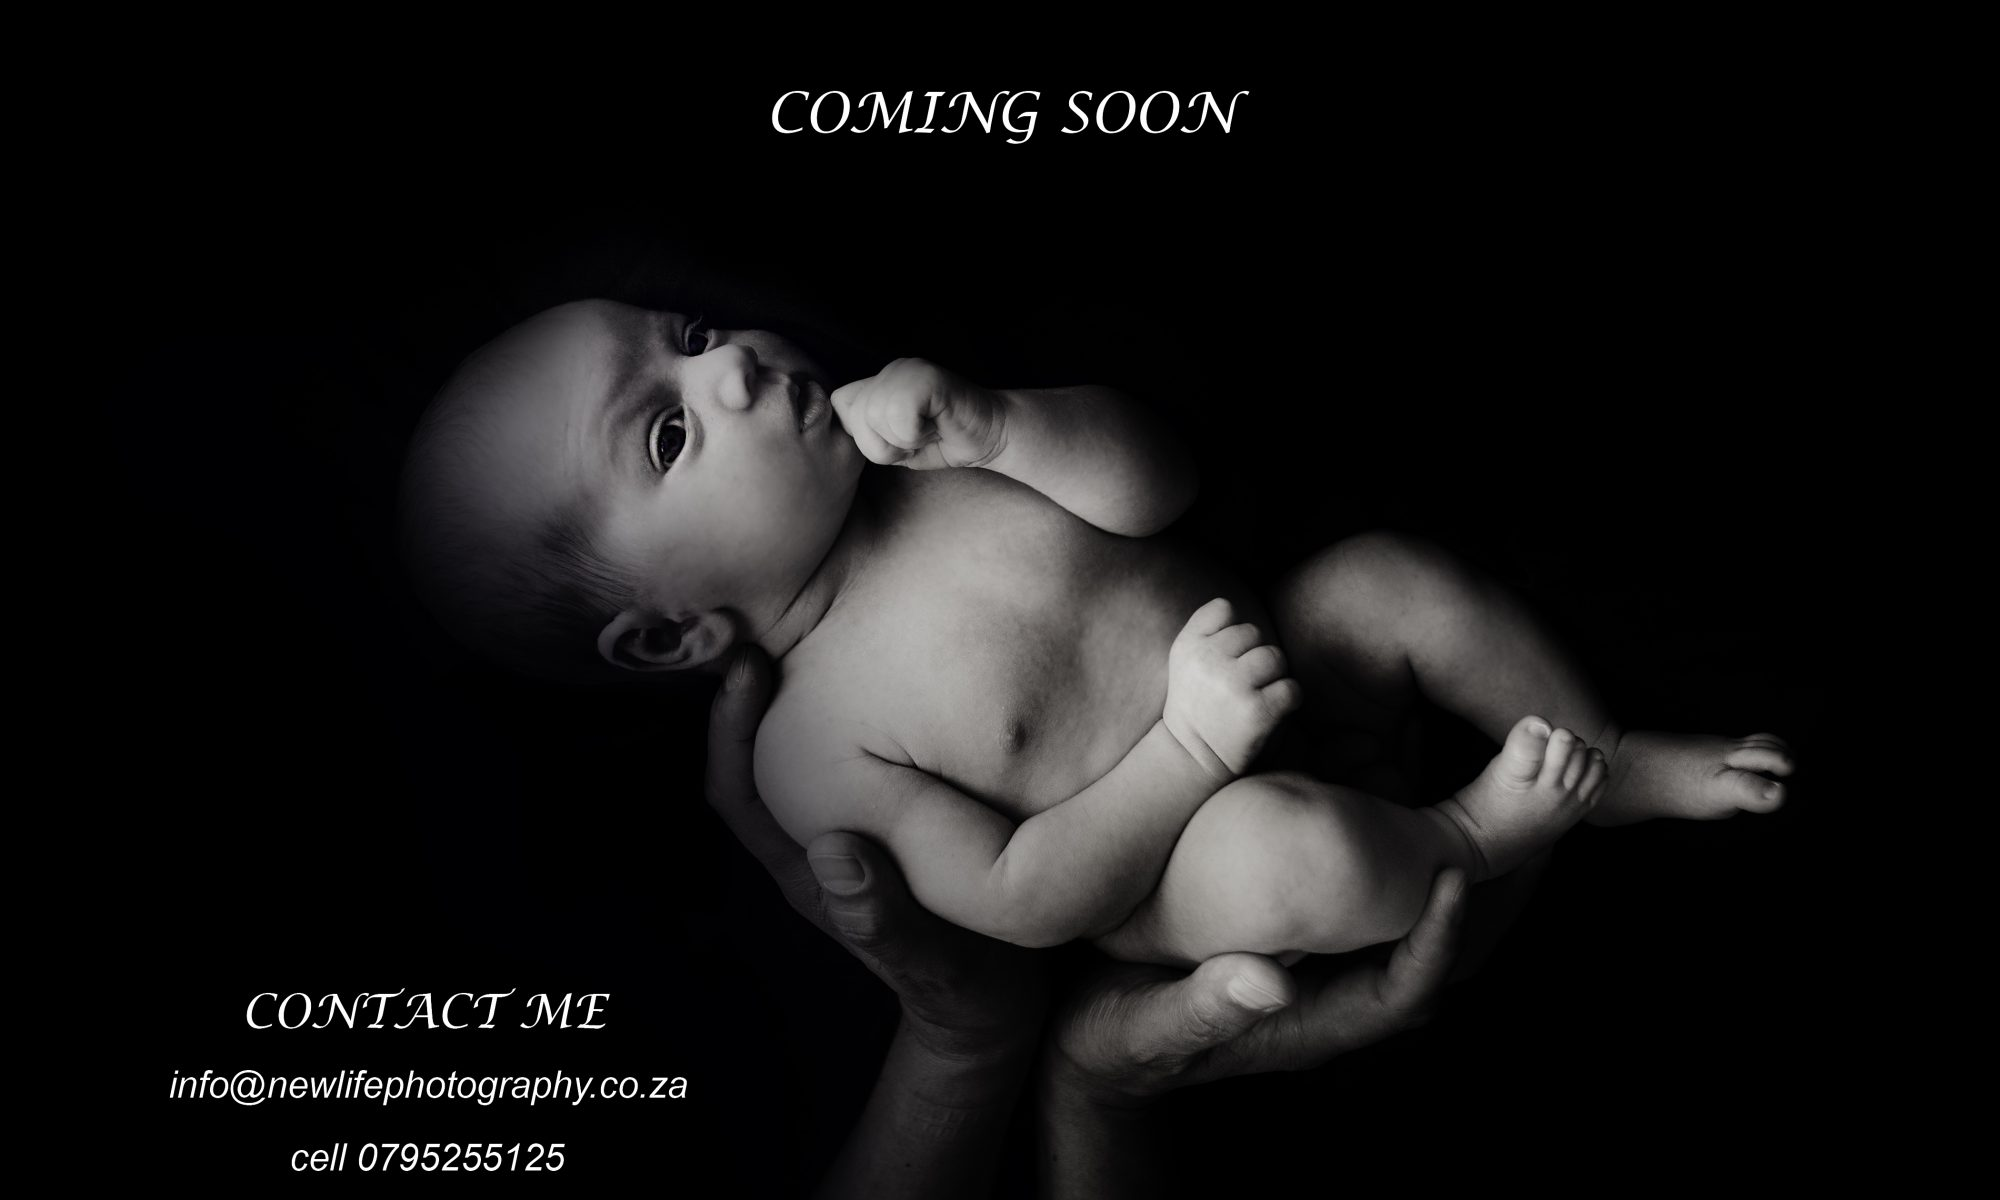 New Life Photography